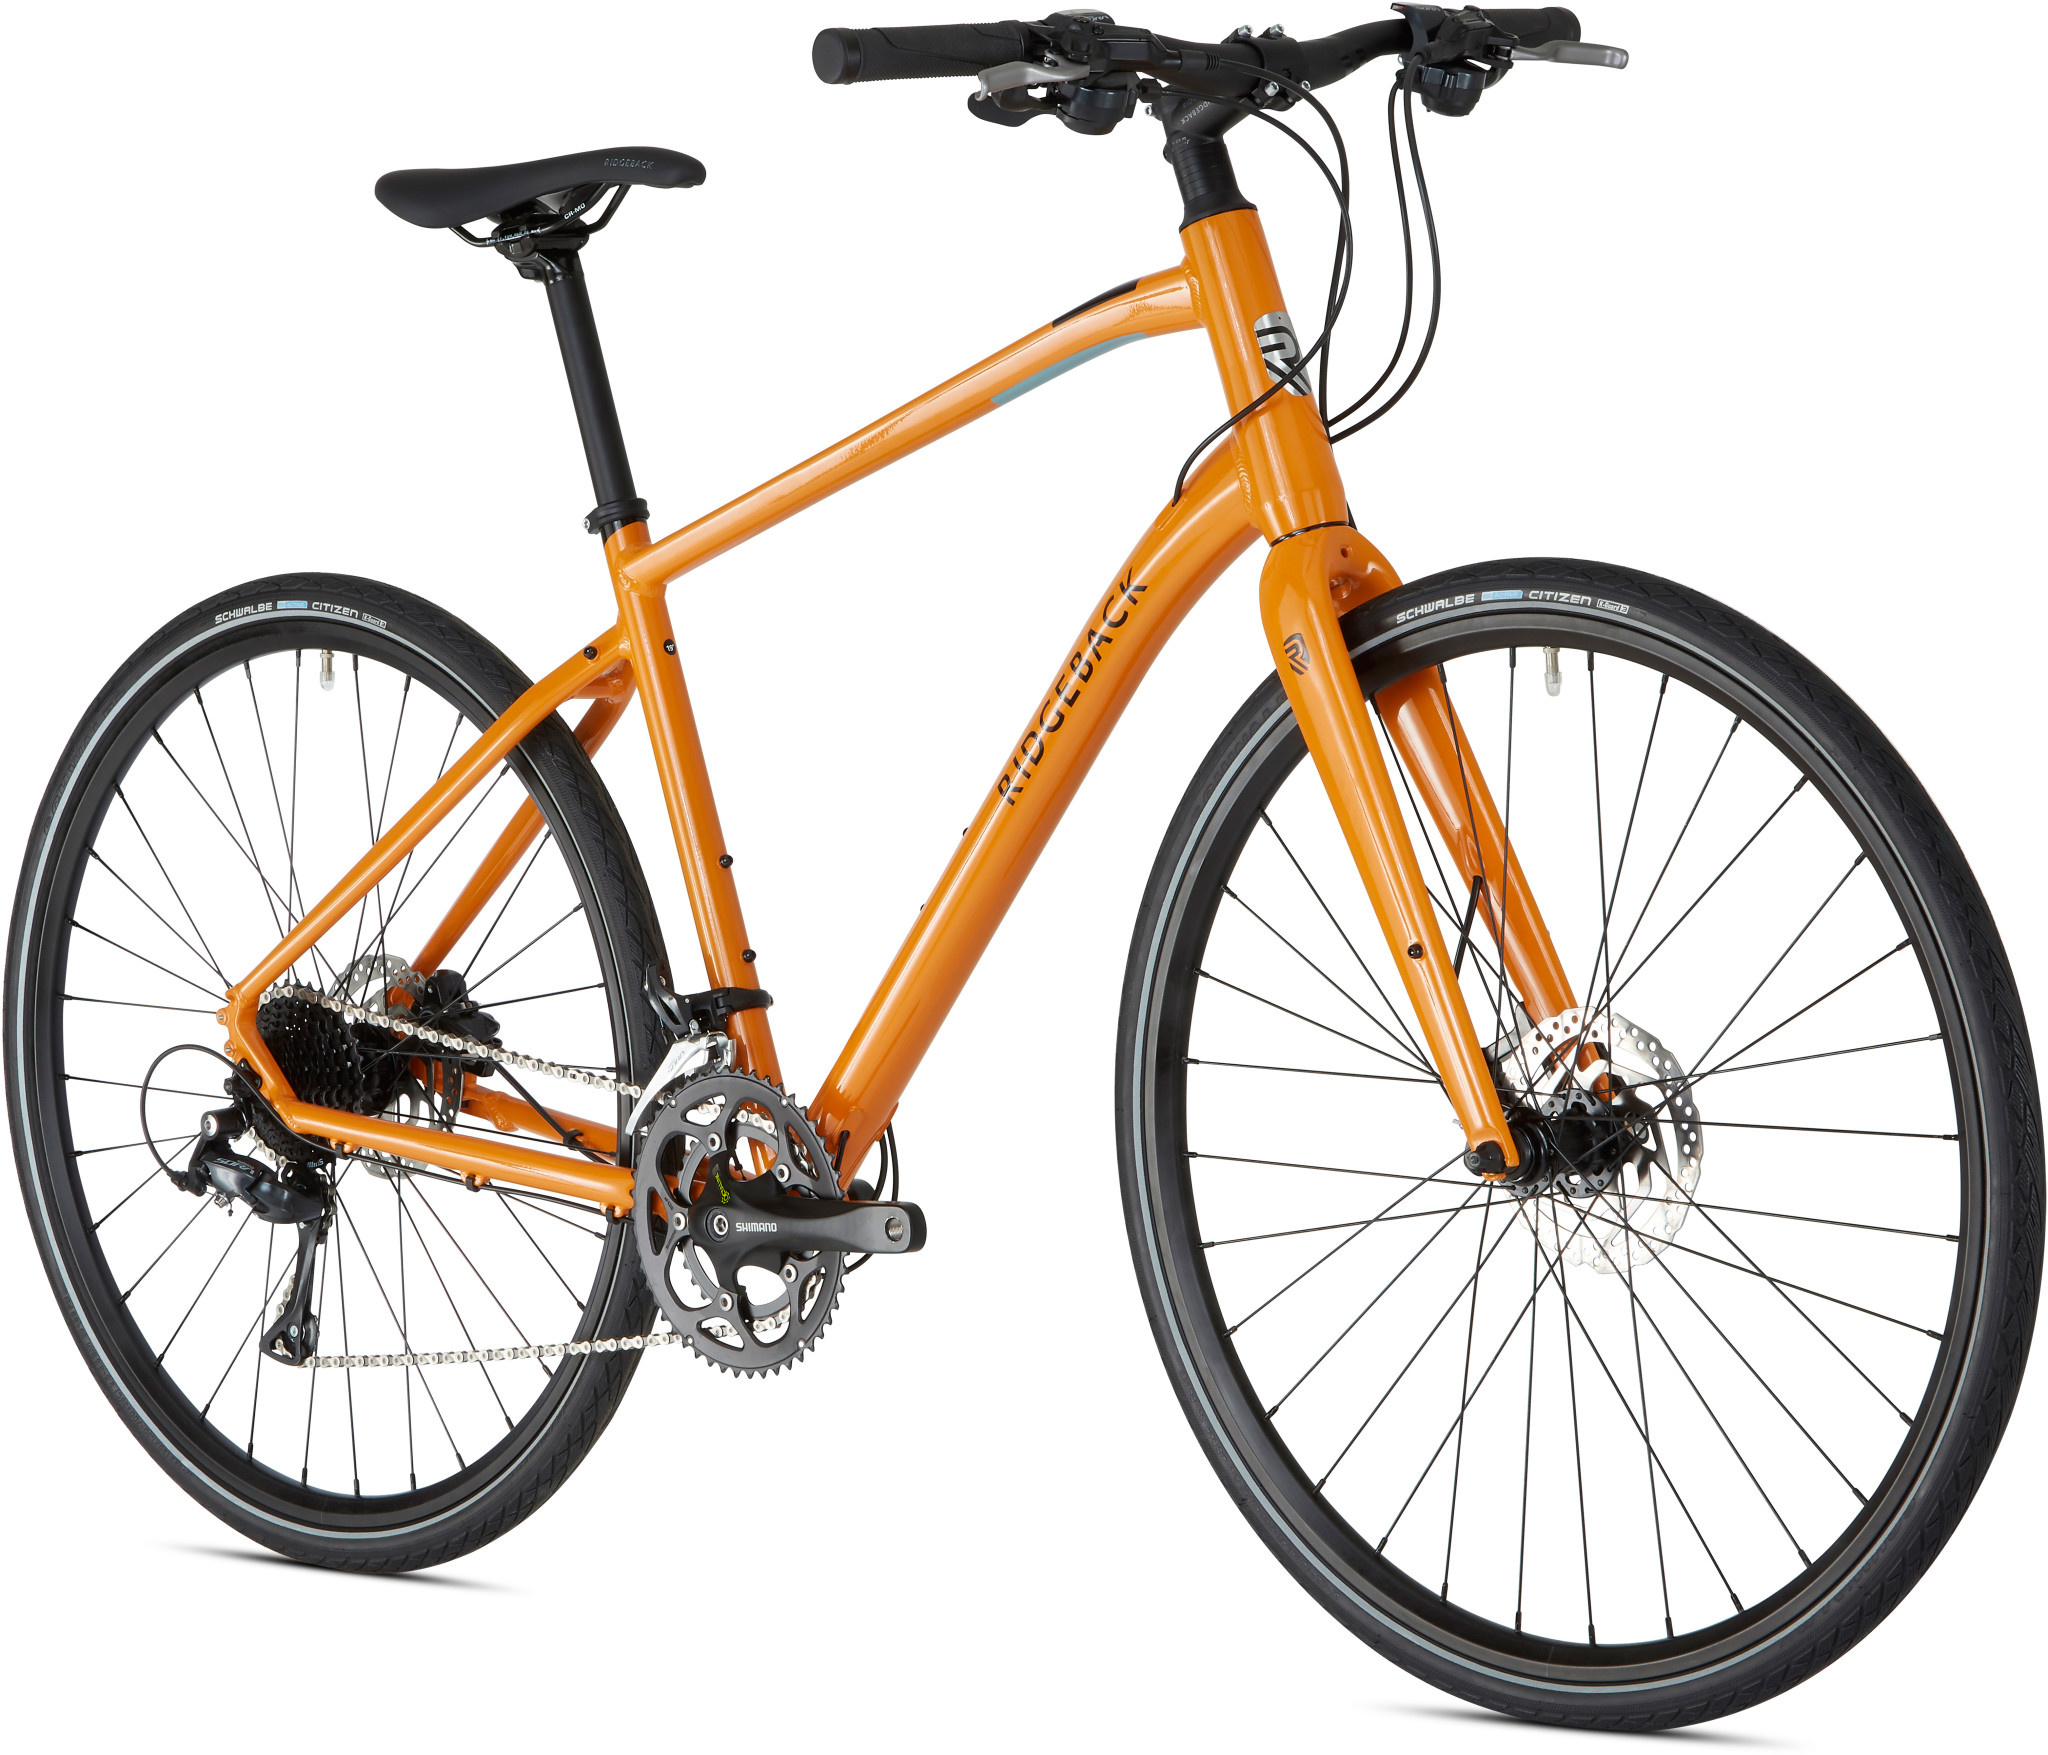 Ridgeback Ridgeback Tempest Hydraulic Disc Orange 2019/2020